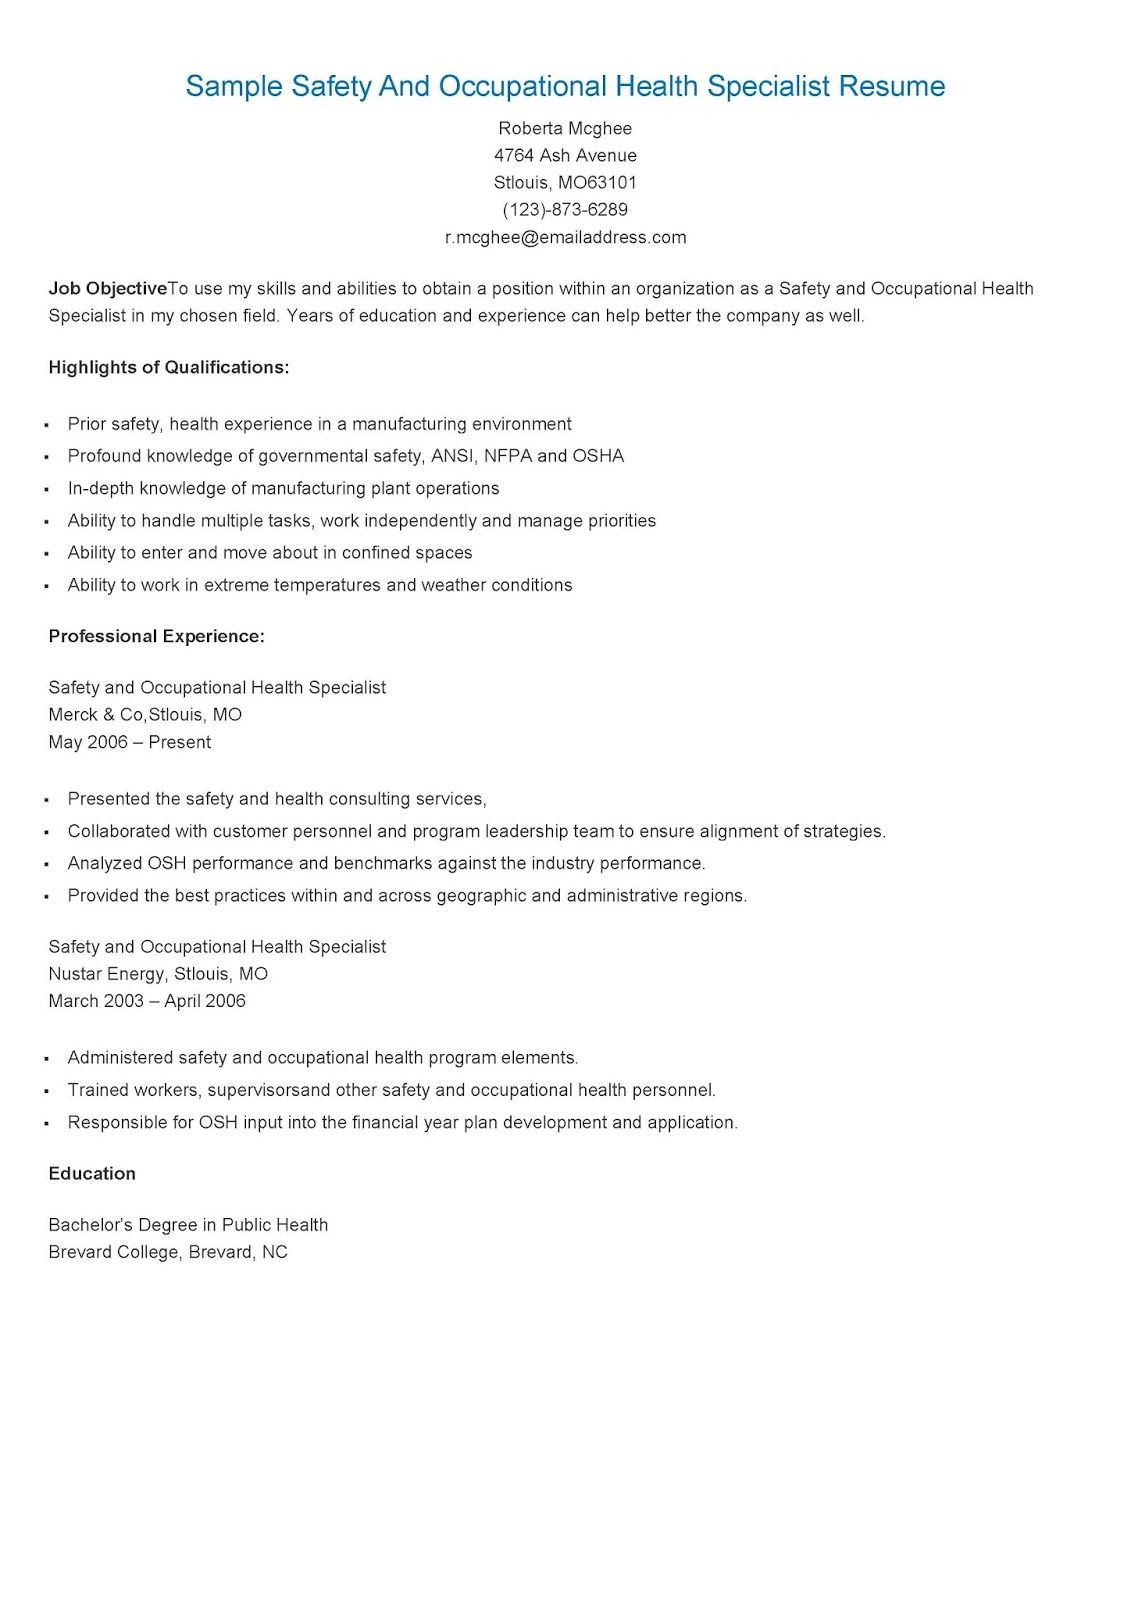 Safety and Occupational Health Specialist Sample Resume Sample Safety and Occupational Health Specialist Resume Sample …